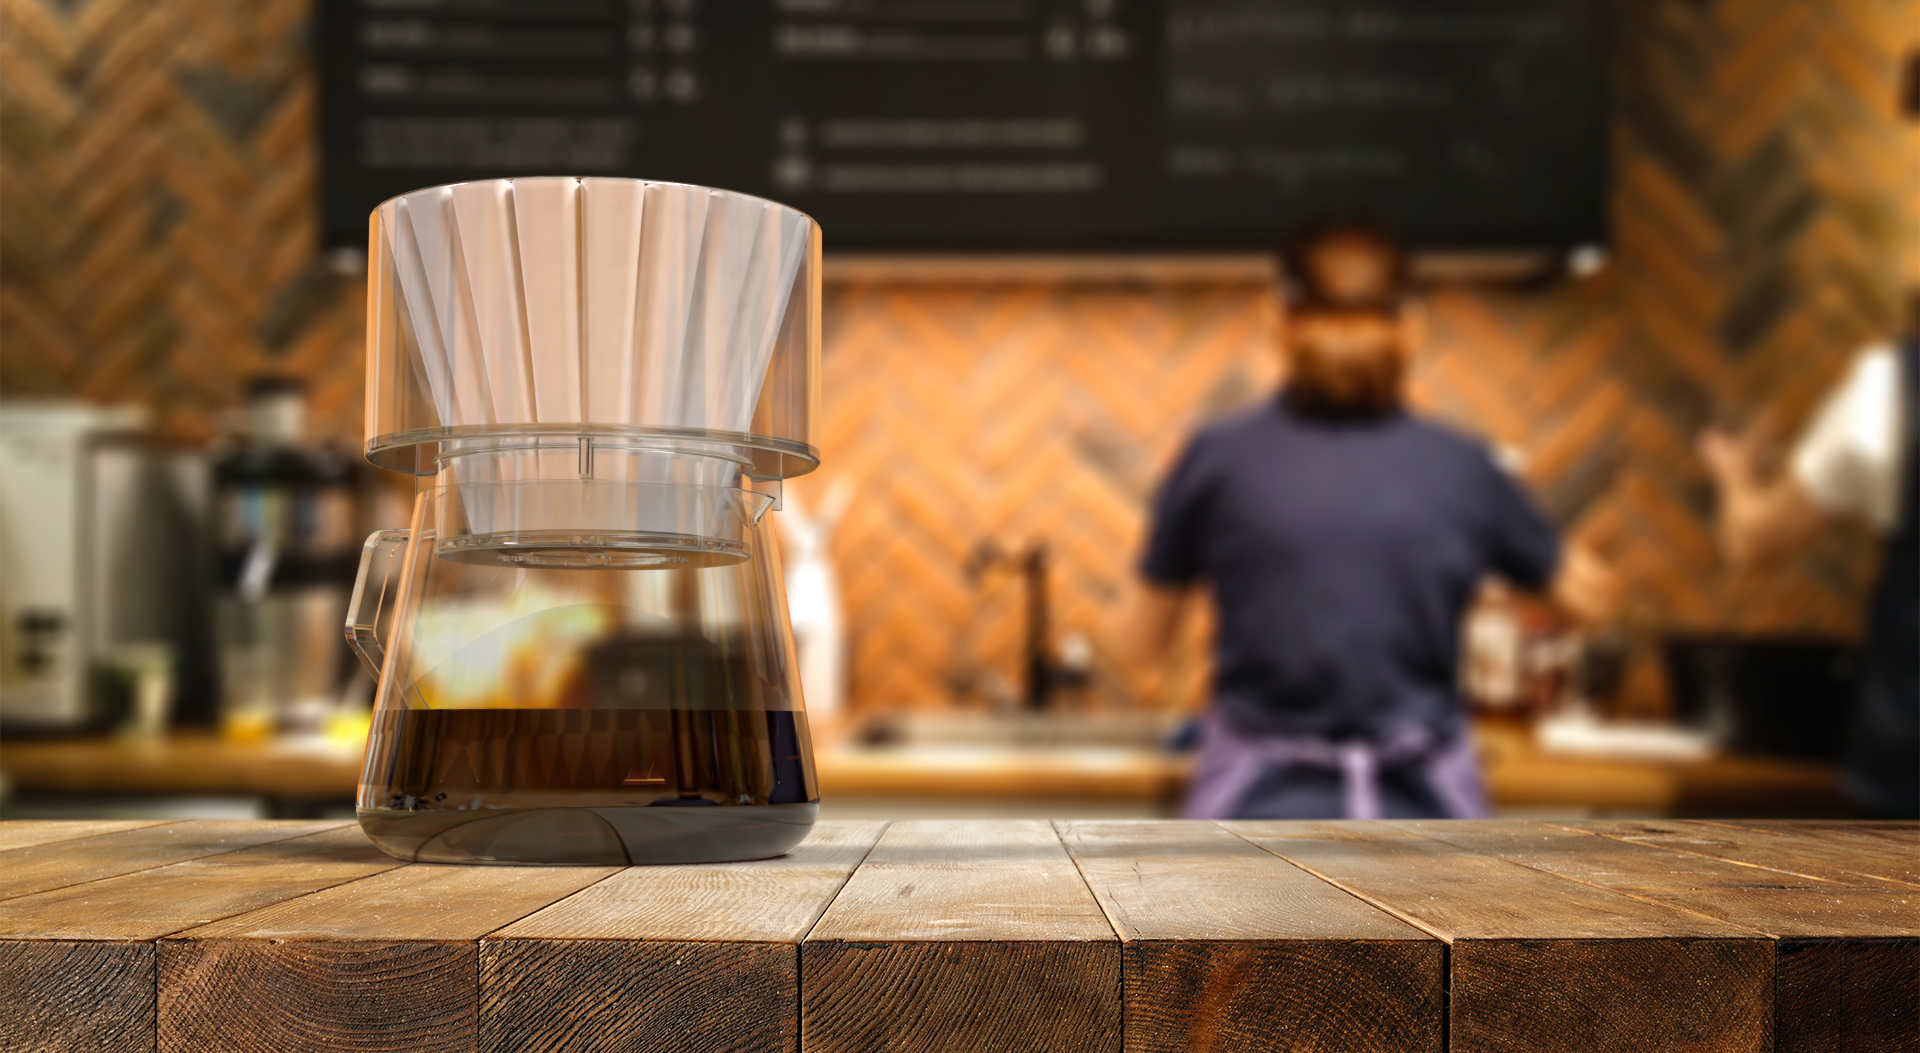 Simplify the Brewer cafe